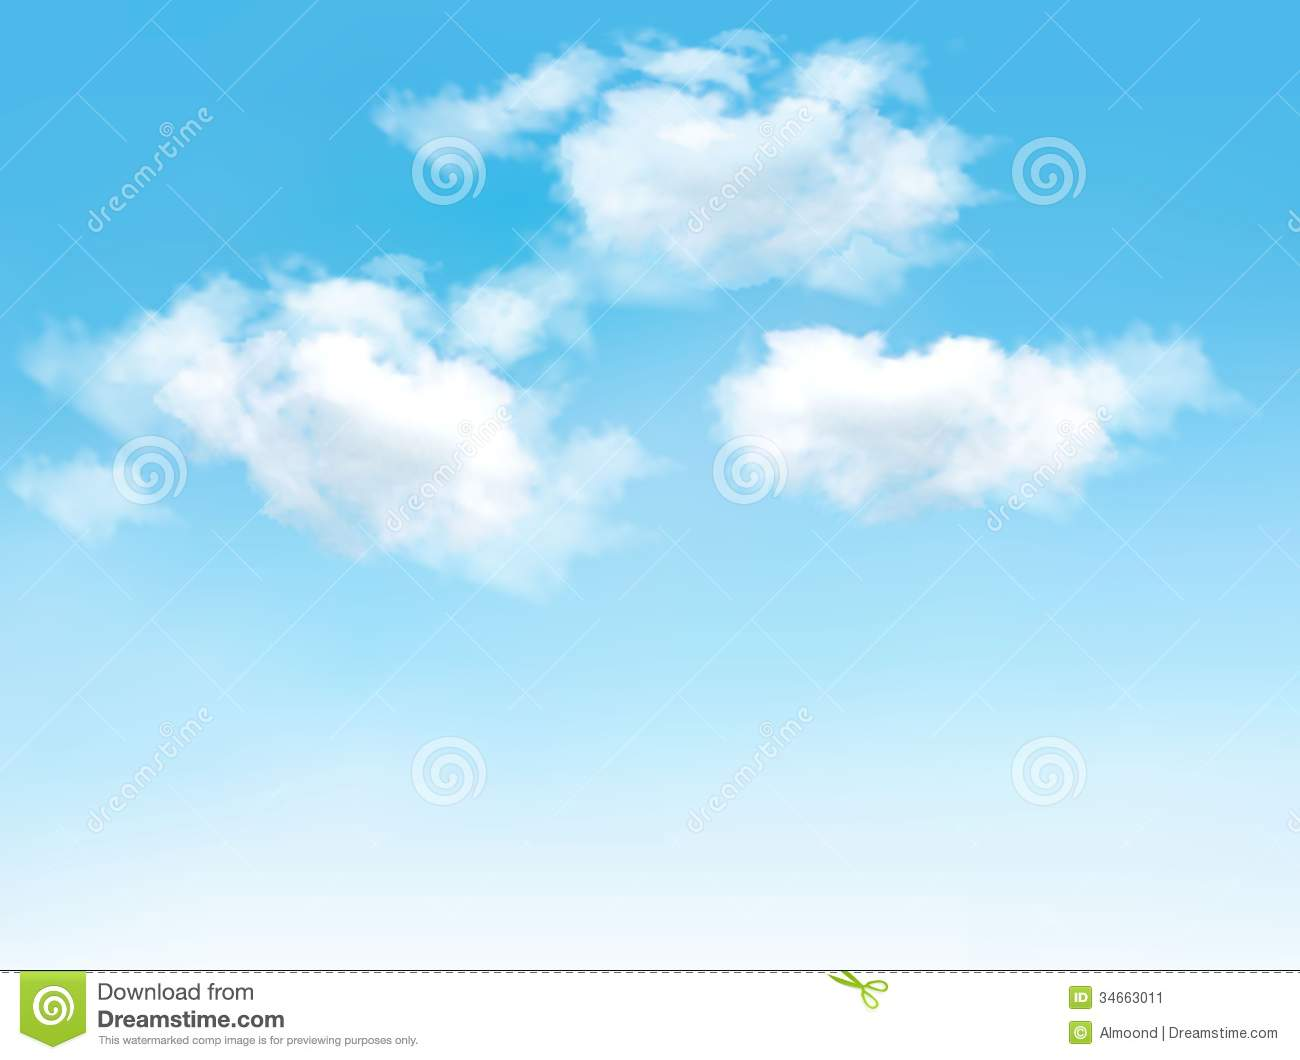 sky blue background vector - photo #38